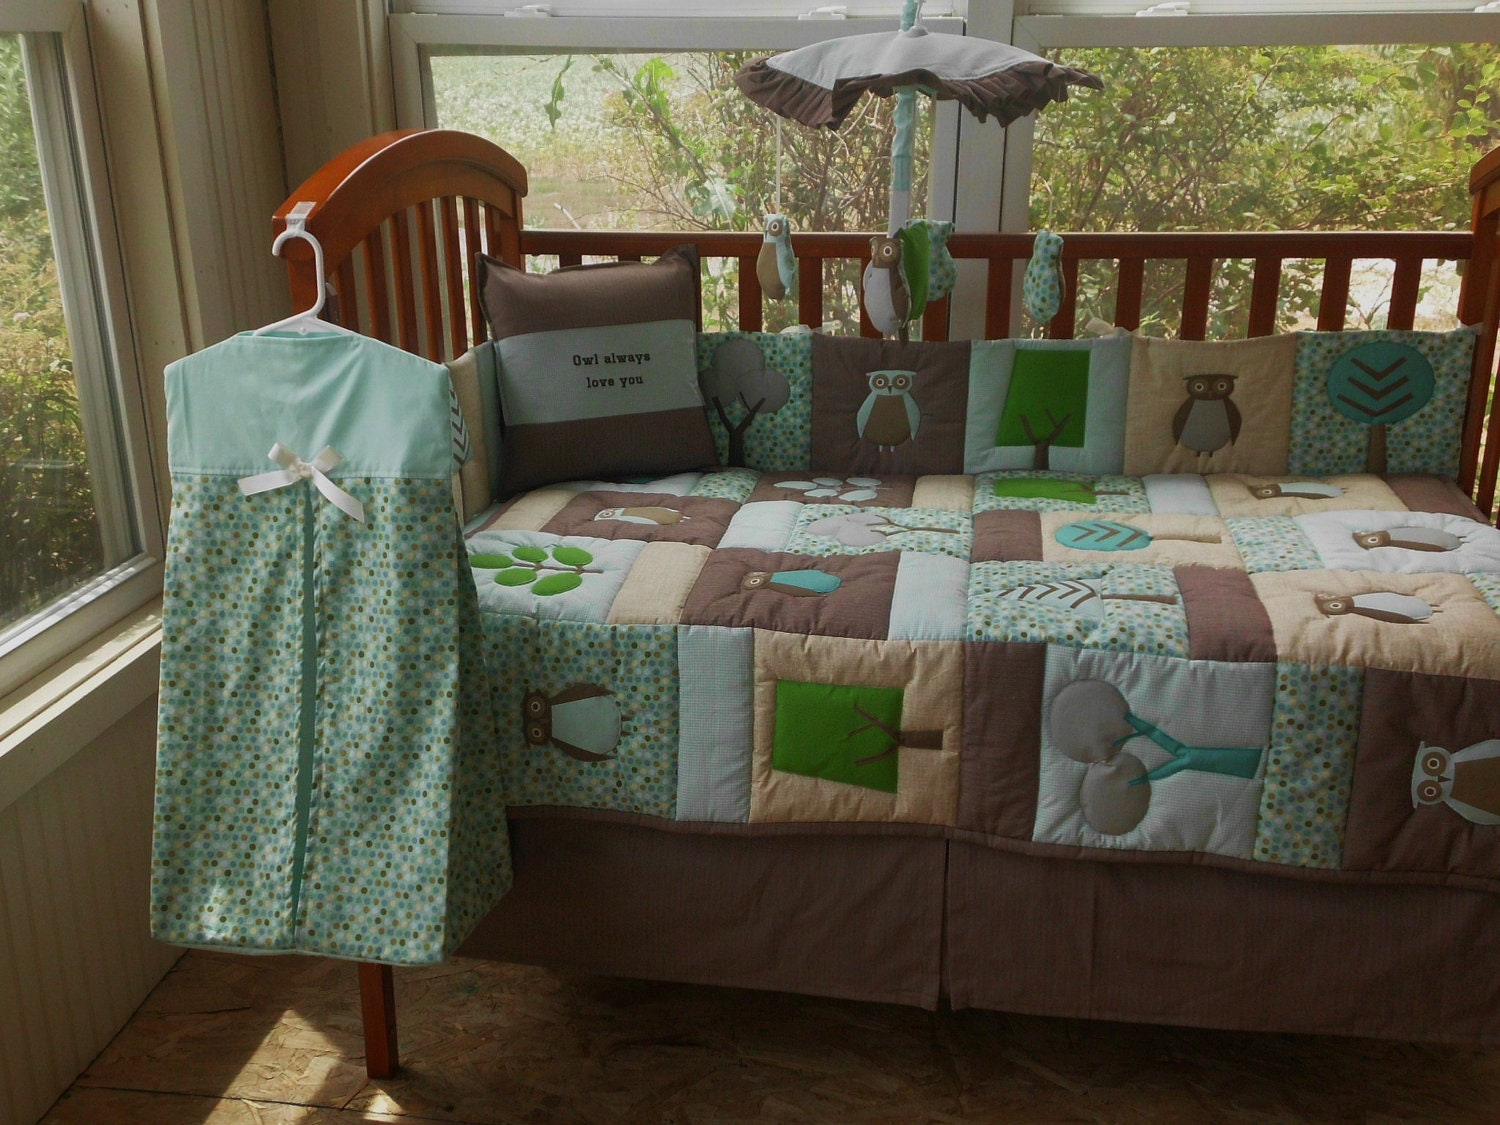 9pc custom dwell studio owl sky fabric crib bedding set by loreiz